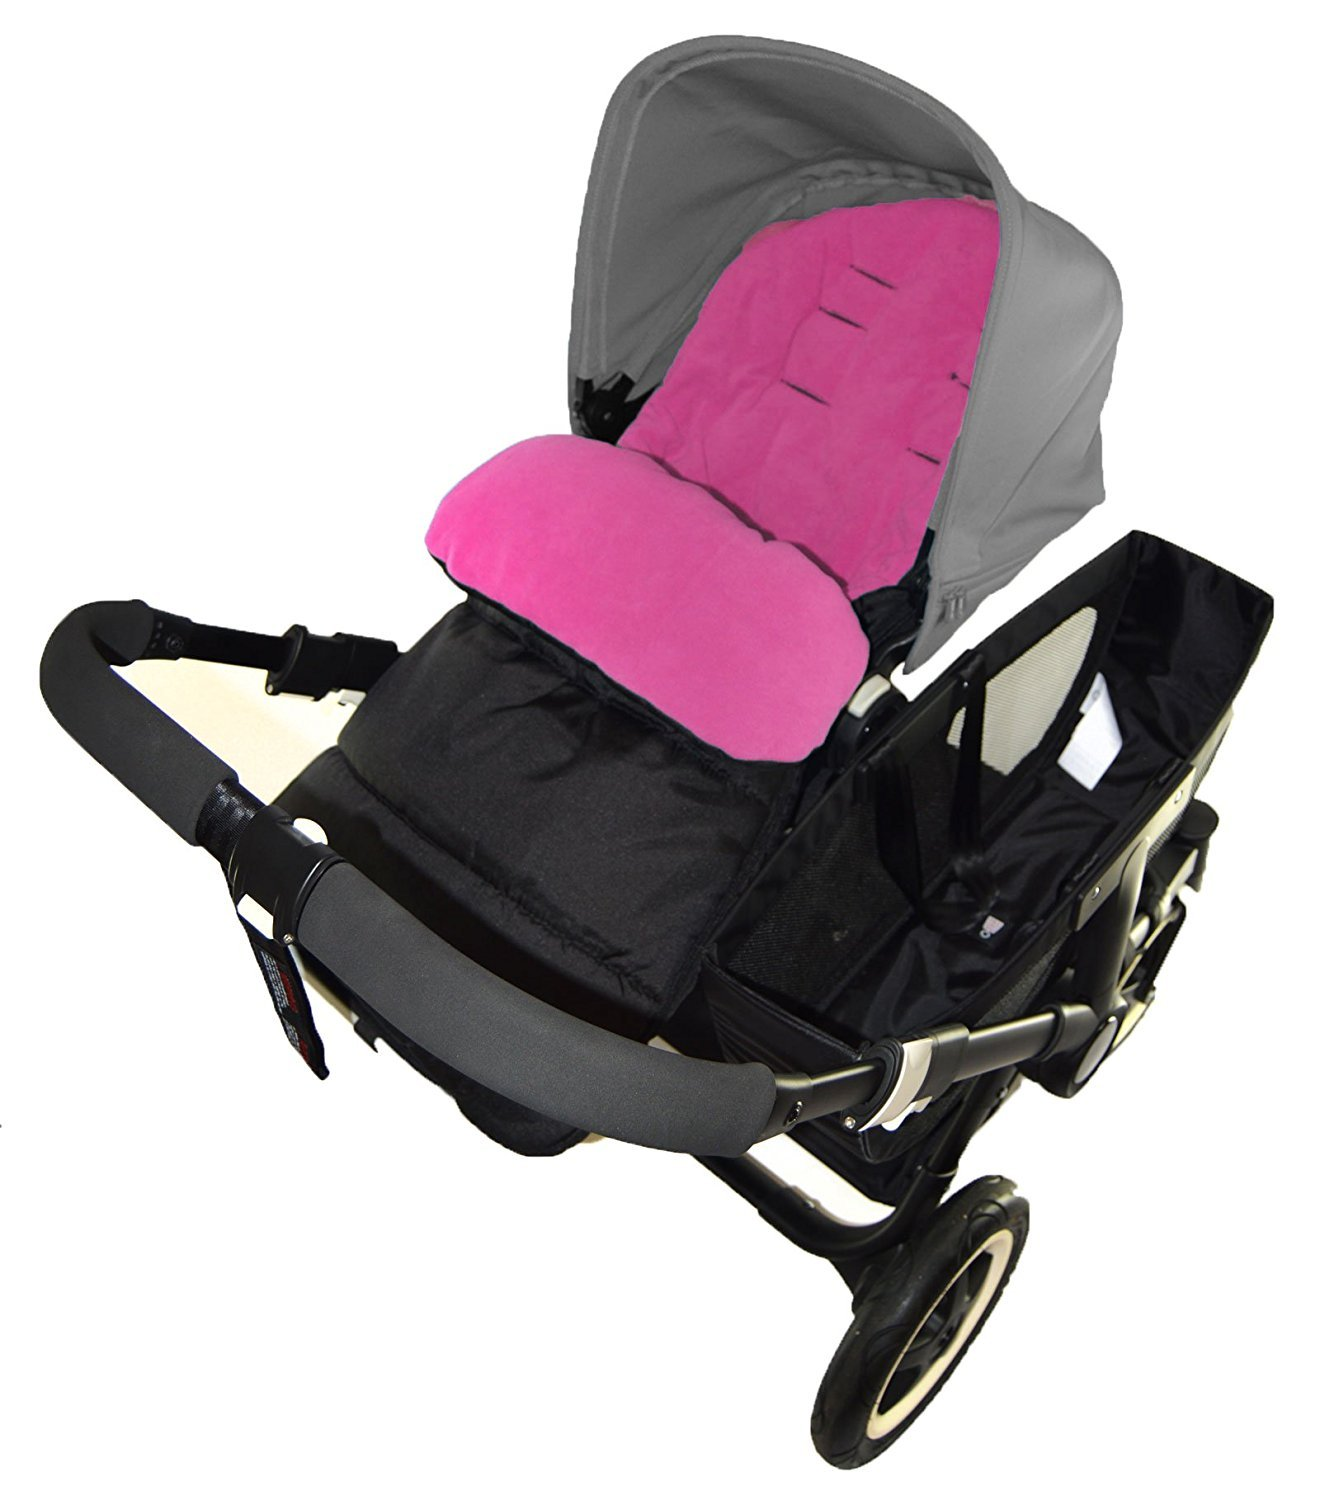 Footmuff//Cosy Toes Compatible with Mountain Buugy Cosmopolitan Pushchair Pink Rose